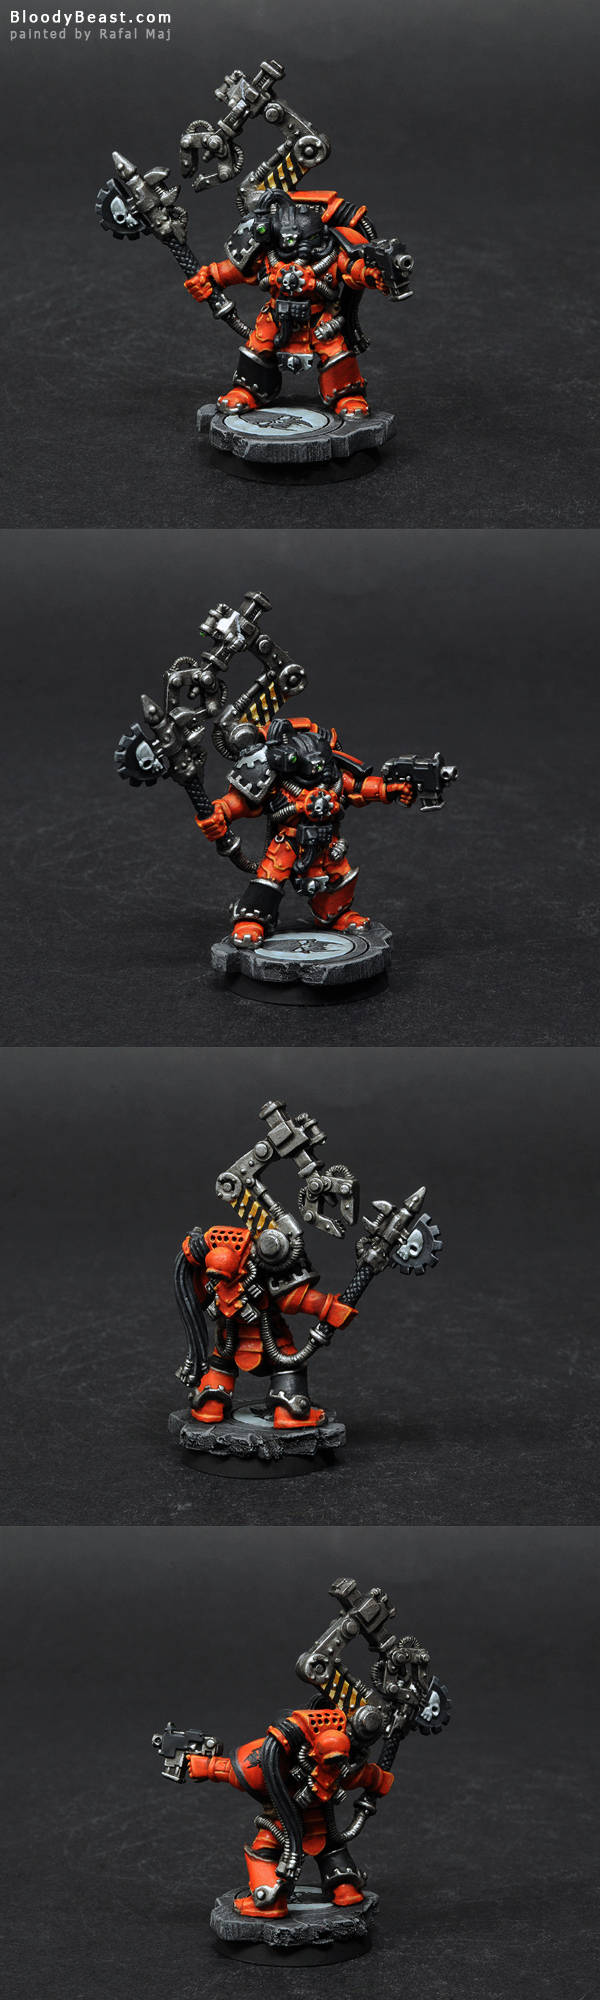 Astral Tiger Space Marine Techmarine painted by Rafal Maj (BloodyBeast.com)